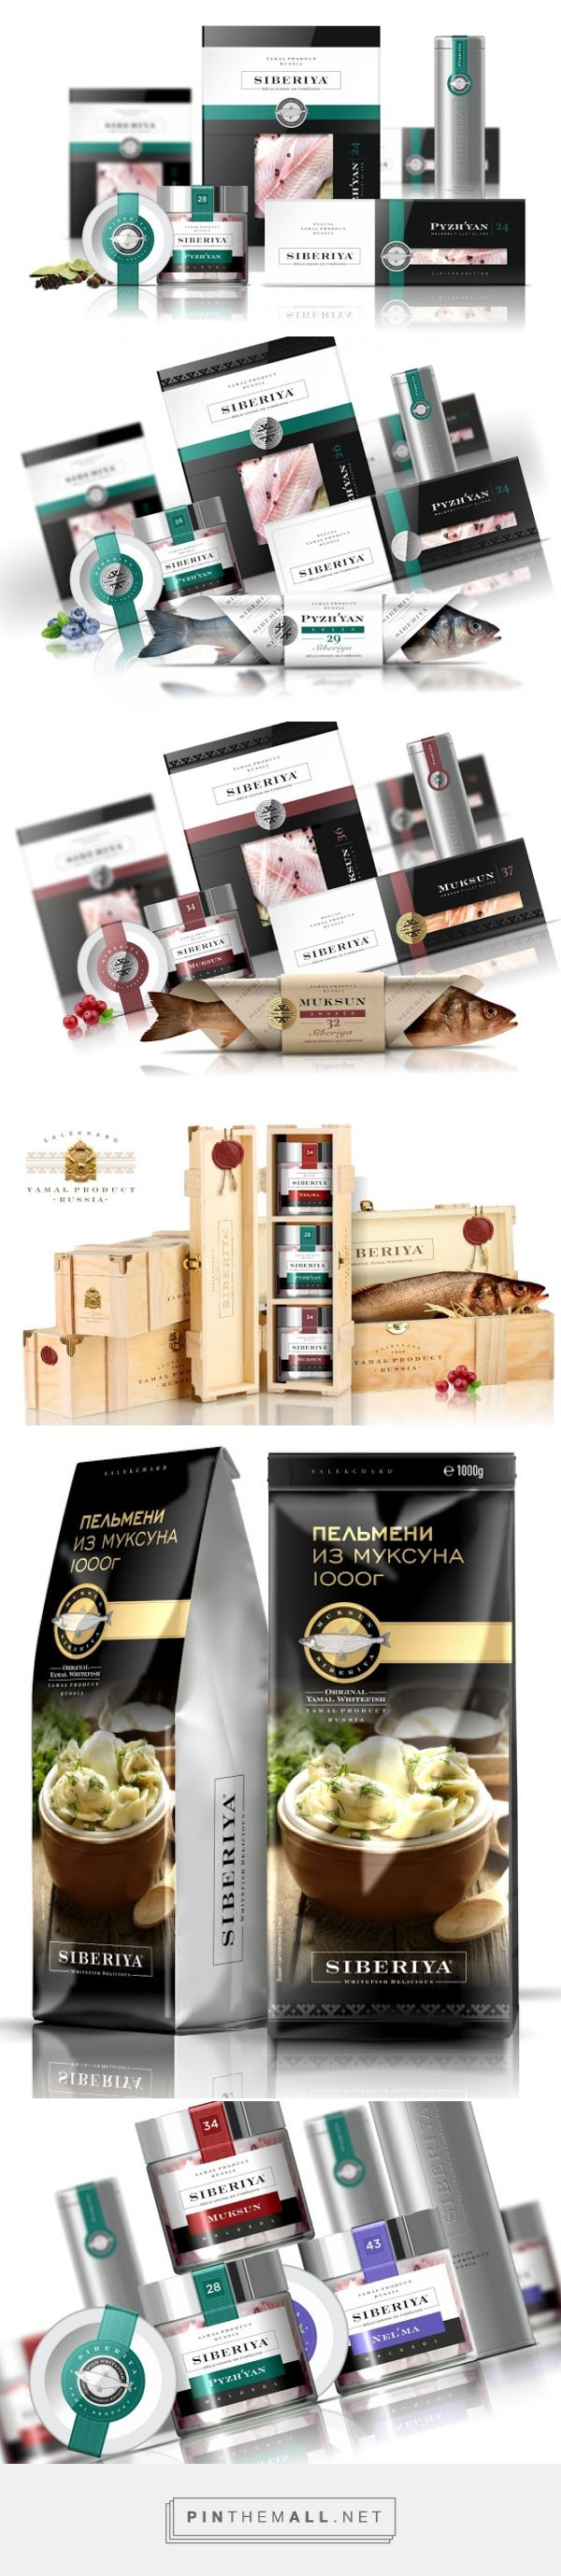 SIBERIYA #fish #packaging designed by Brandveel - http://www.packagingoftheworld.com/2015/06/siberiya.html